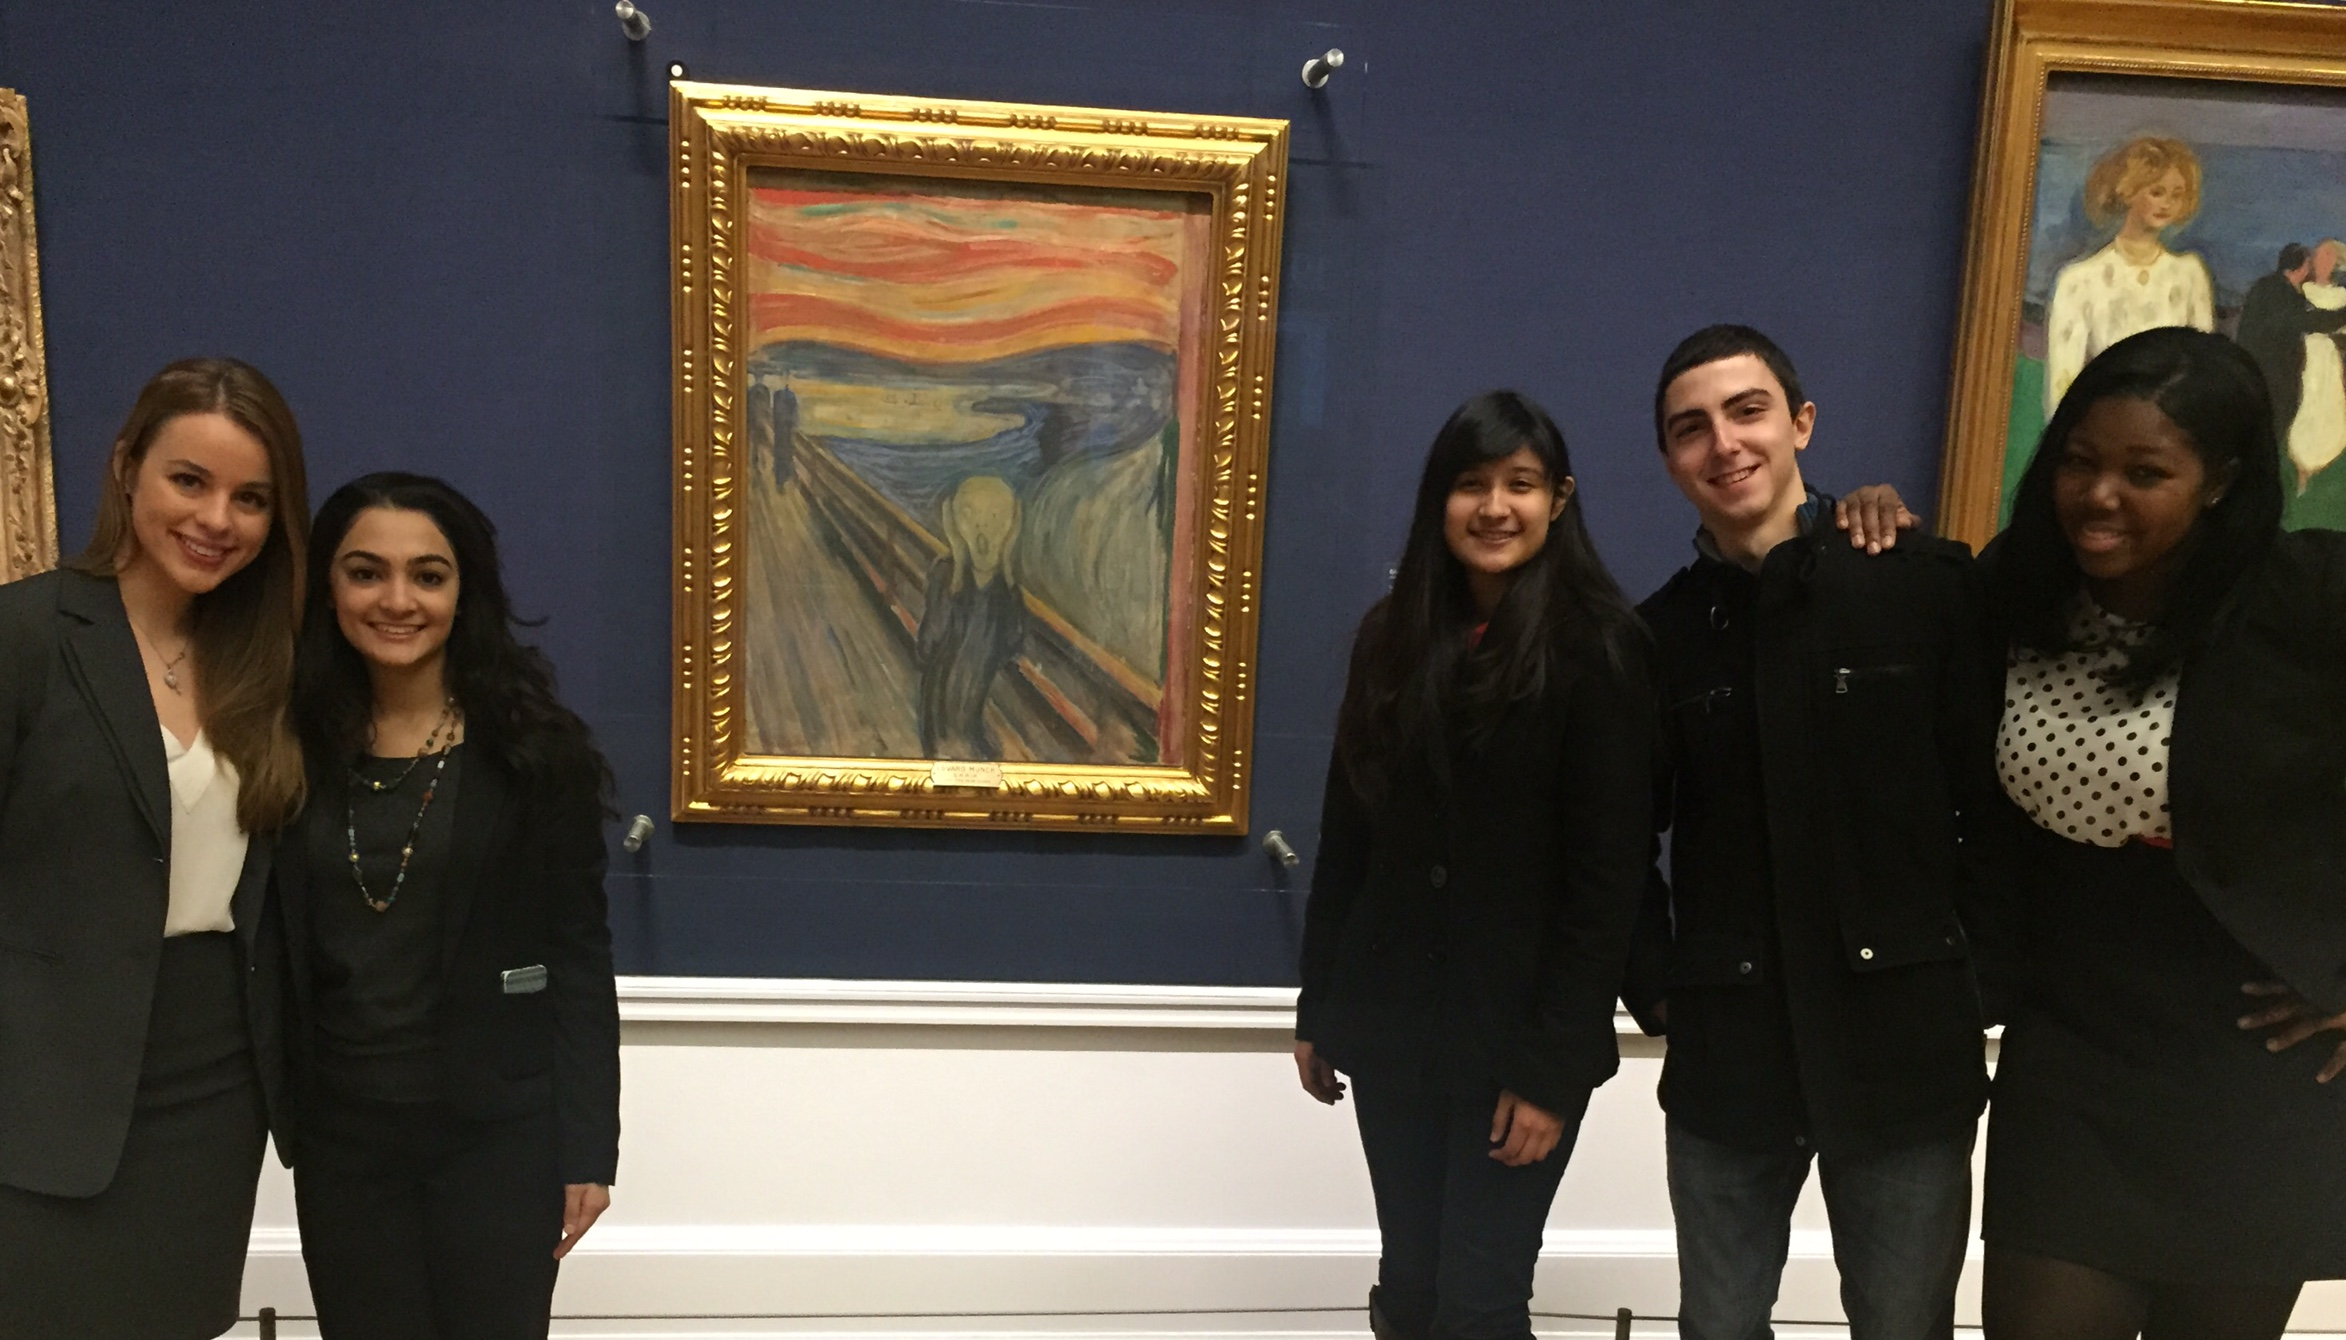 Pace University New York City Model UN students take a break from the 2015 OsloMUN conference to visit Edvard Munch's painting The Scream. Left to right: Lindita Capric '15, Priya Sakaria '17, Jennifer Diaz '16, Vato Gogsadze '15 and Shade Quailey '15.